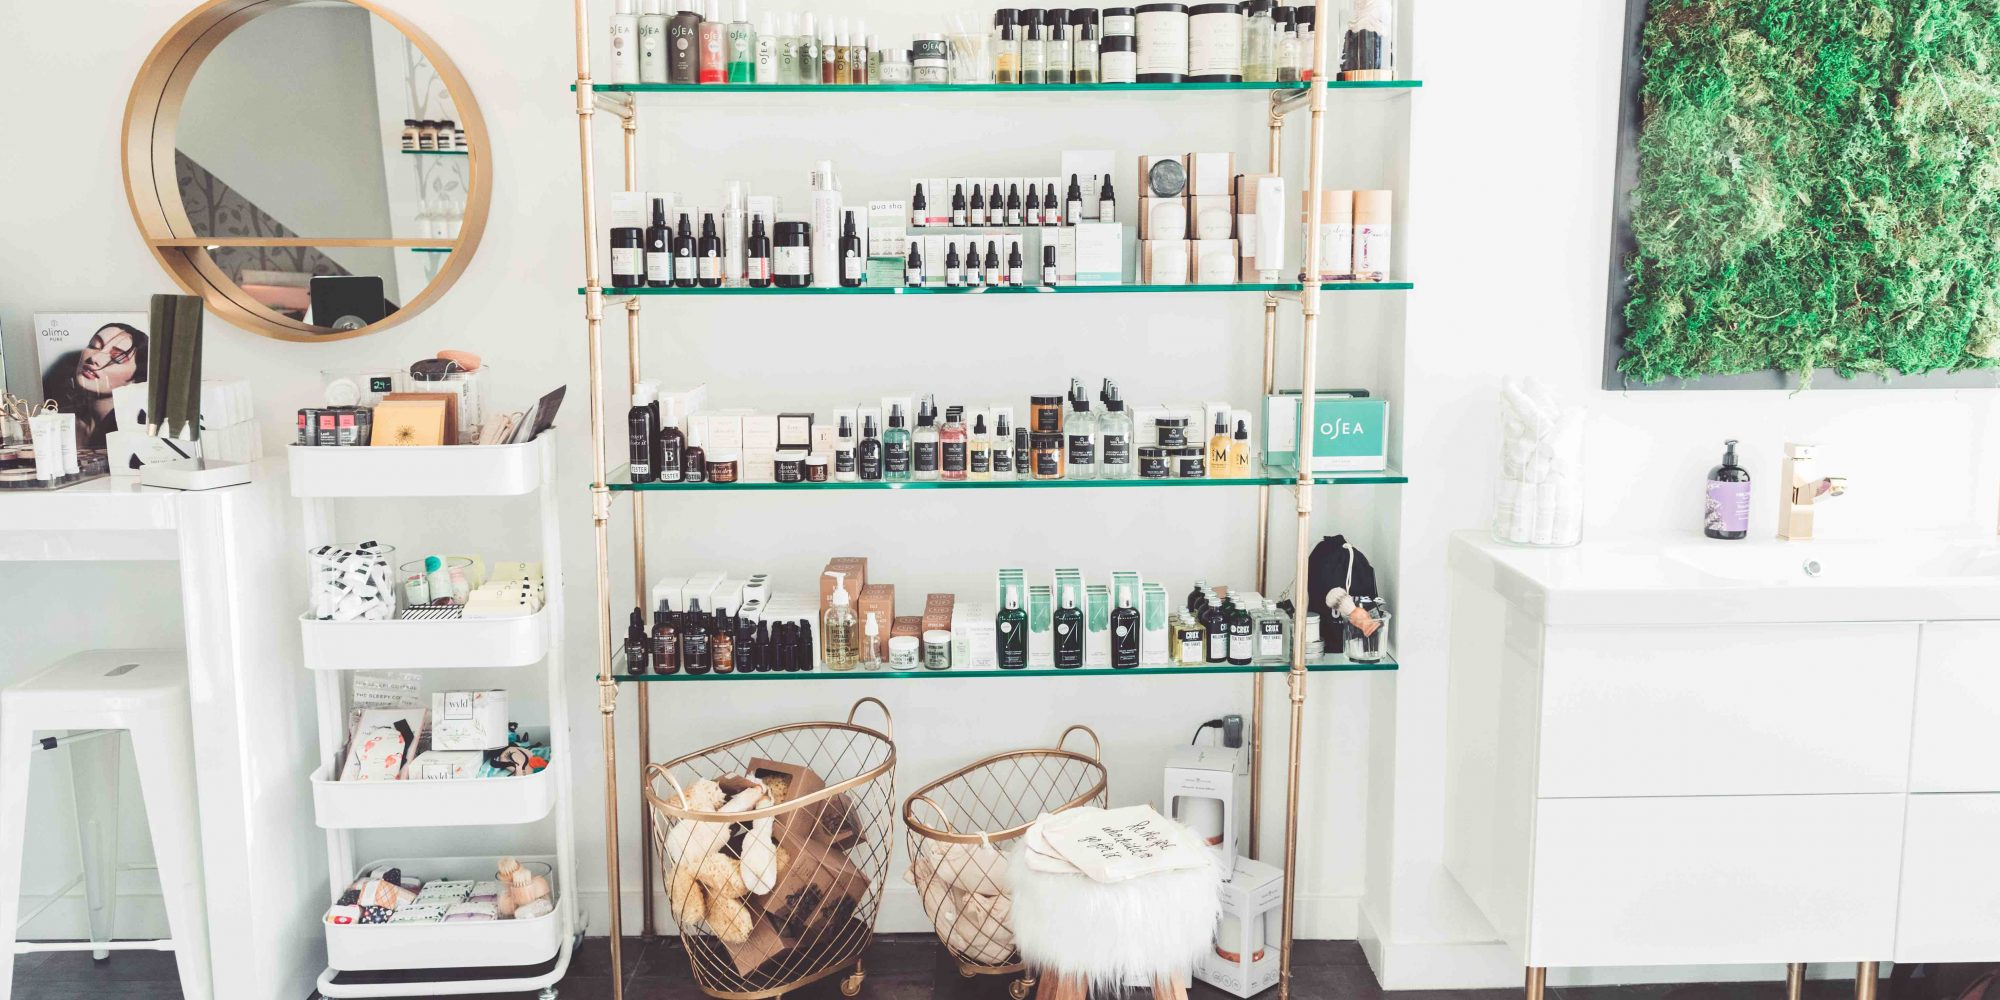 What Indie Beauty Brands Can Do To Support Retailers Reeling From Store Shutdowns